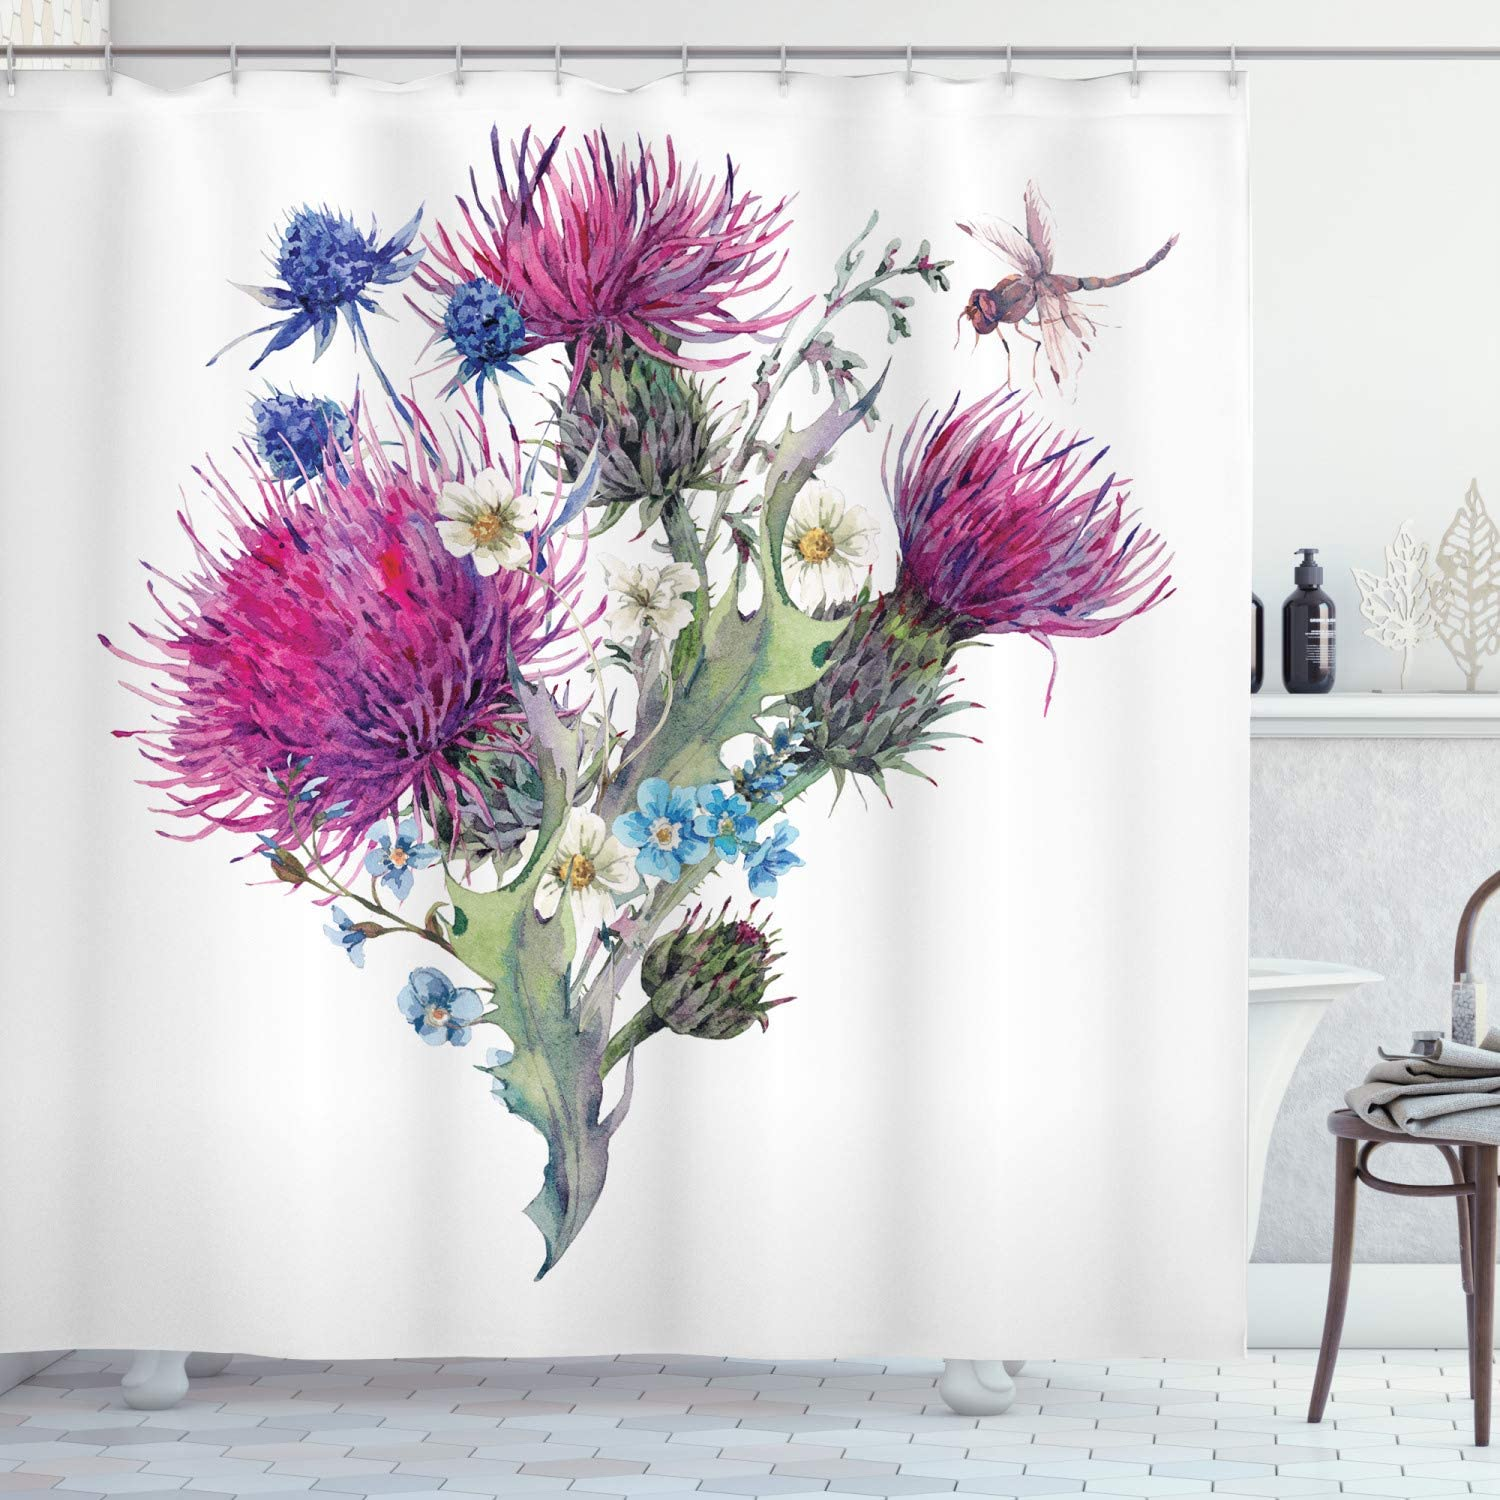 Ambesonne Dragonfly Shower Curtain, Summer Natural Meadow Herbs Bouquet Wild Thistles Chamomiles Watercolor Boho Art, Cloth Fabric Bathroom Decor Set with Hooks, 84